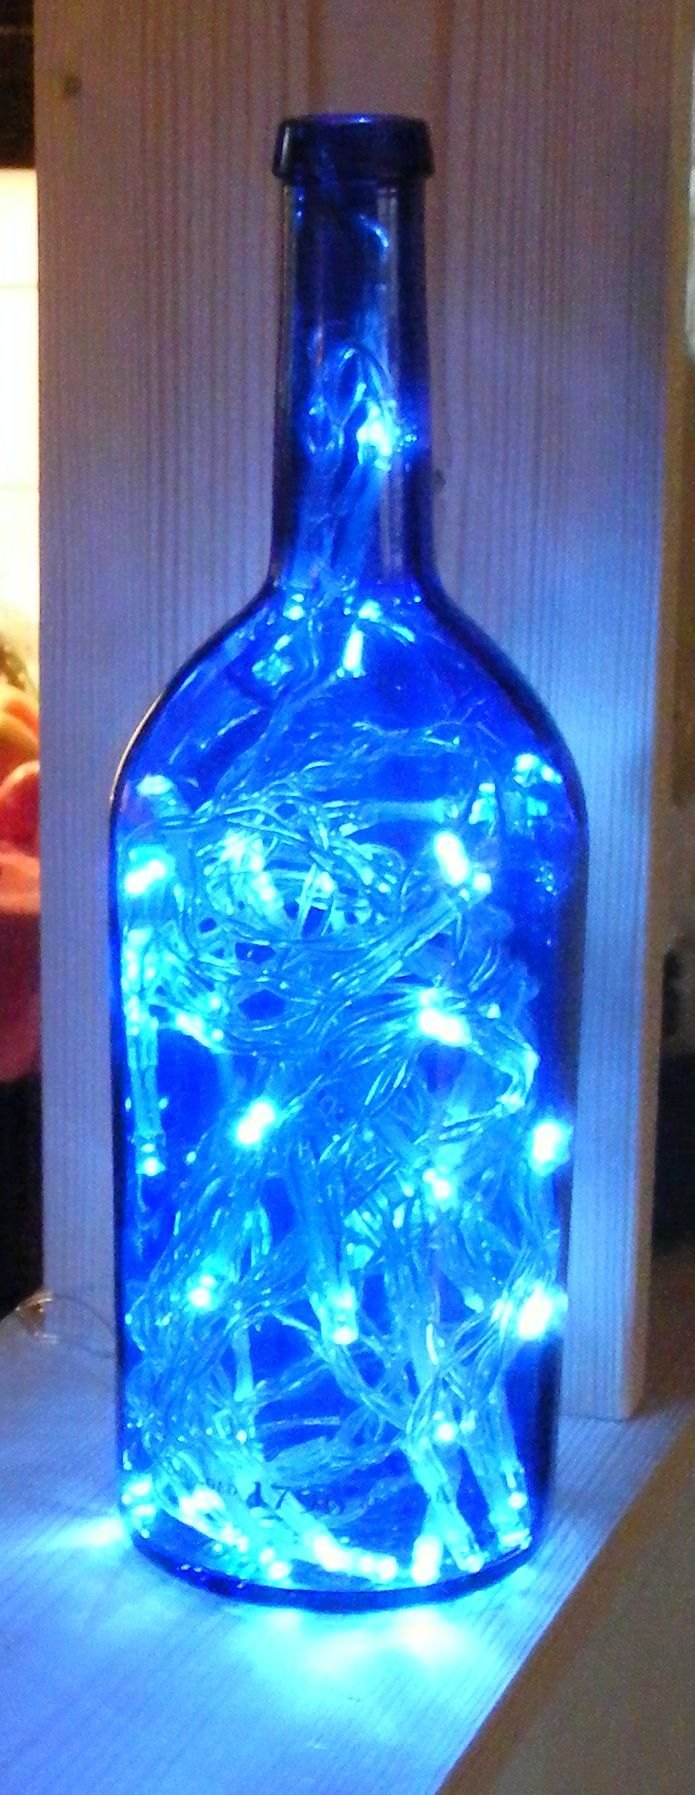 Wine bottles are a plenty!  Know where I can get them....they are just waiting for a new home.  Love this idea.  Thinking of Seahawks lights or other gift ideas.